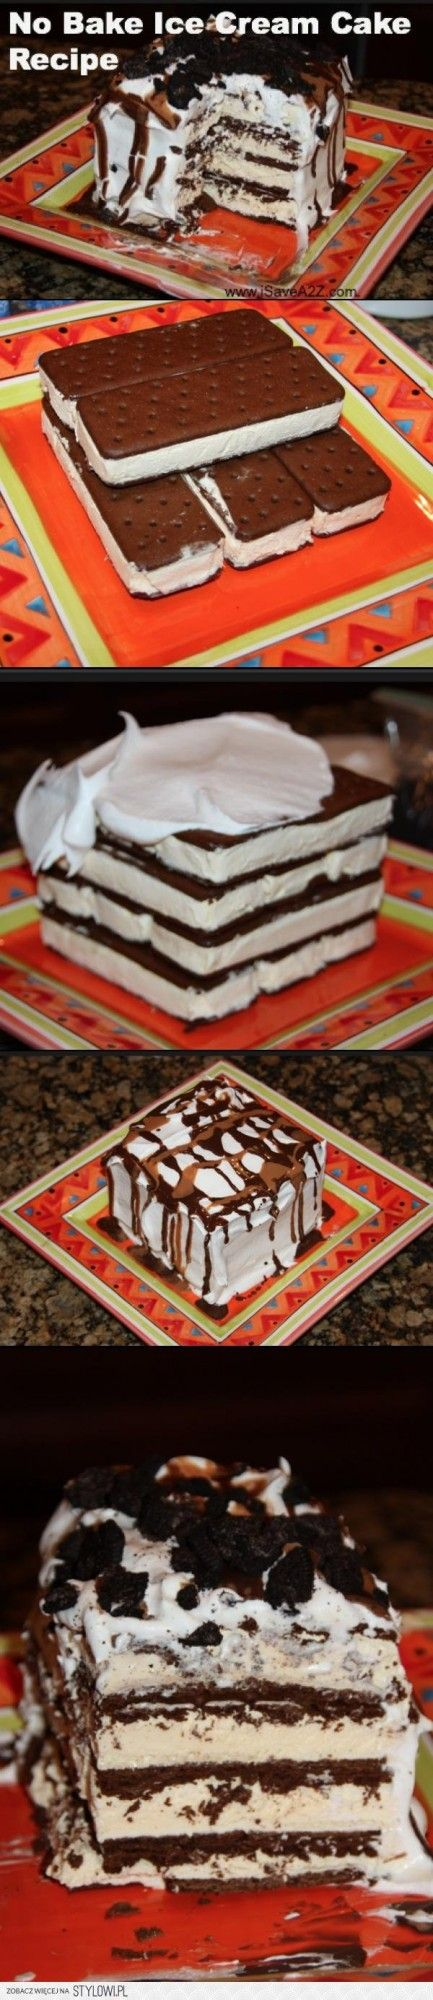 18 Simple and Quick Dessert Recipes Ice Cream Sandwich Cake Try